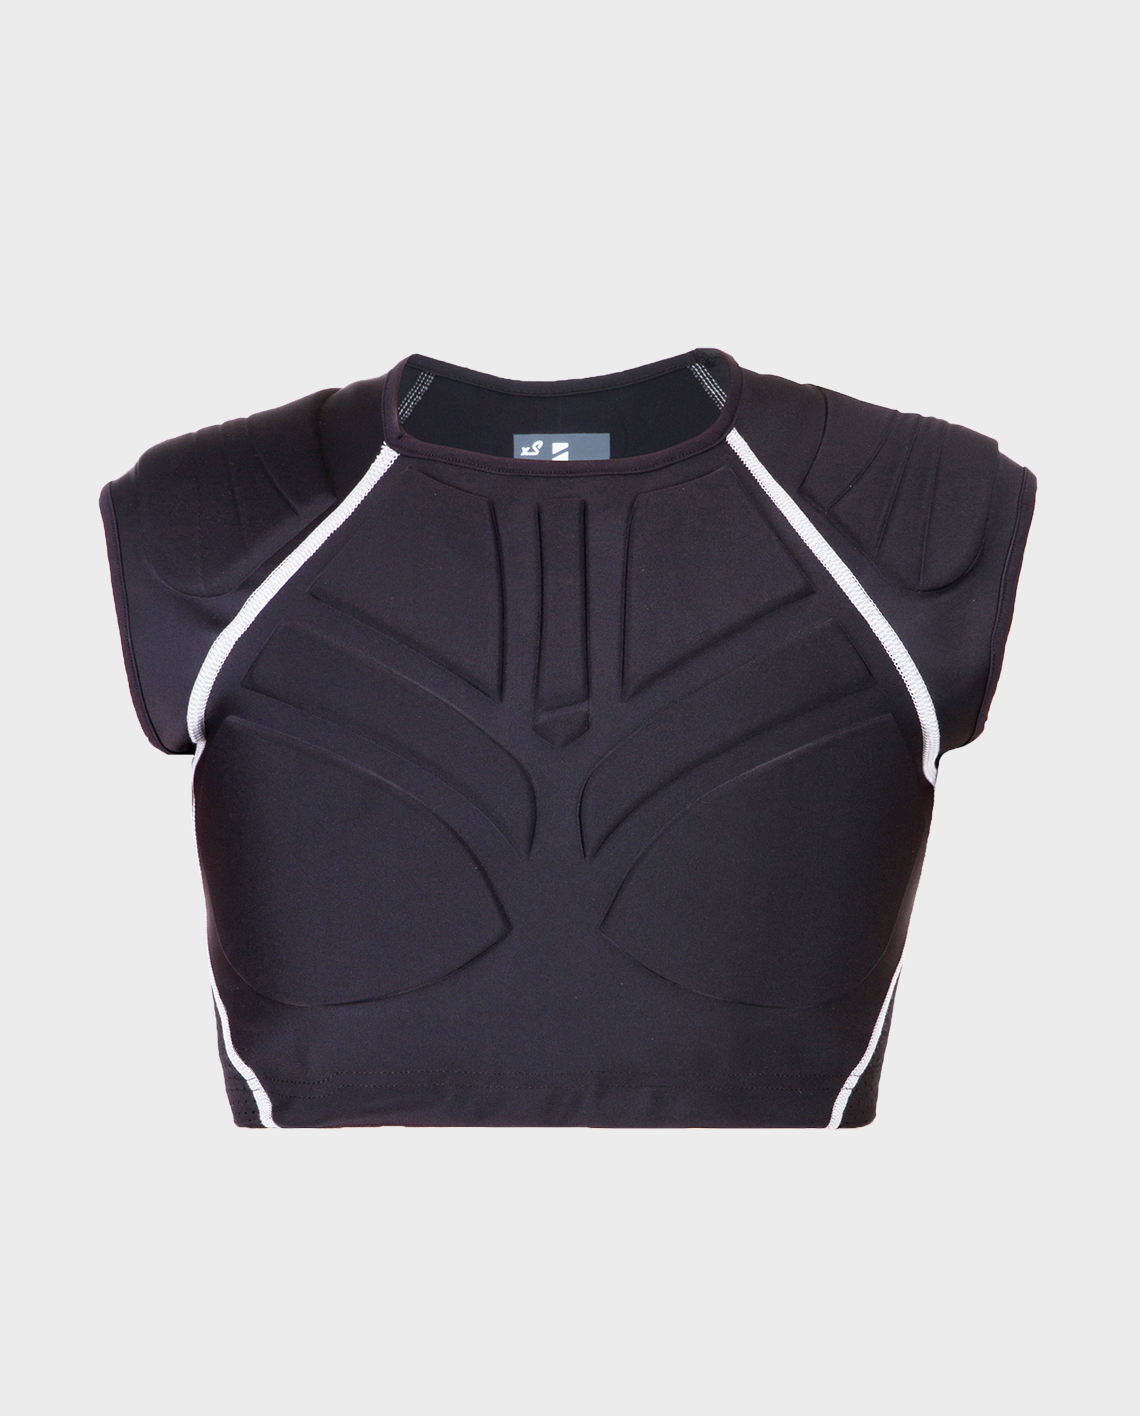 the revelia chest and shoulders protection for contact sports